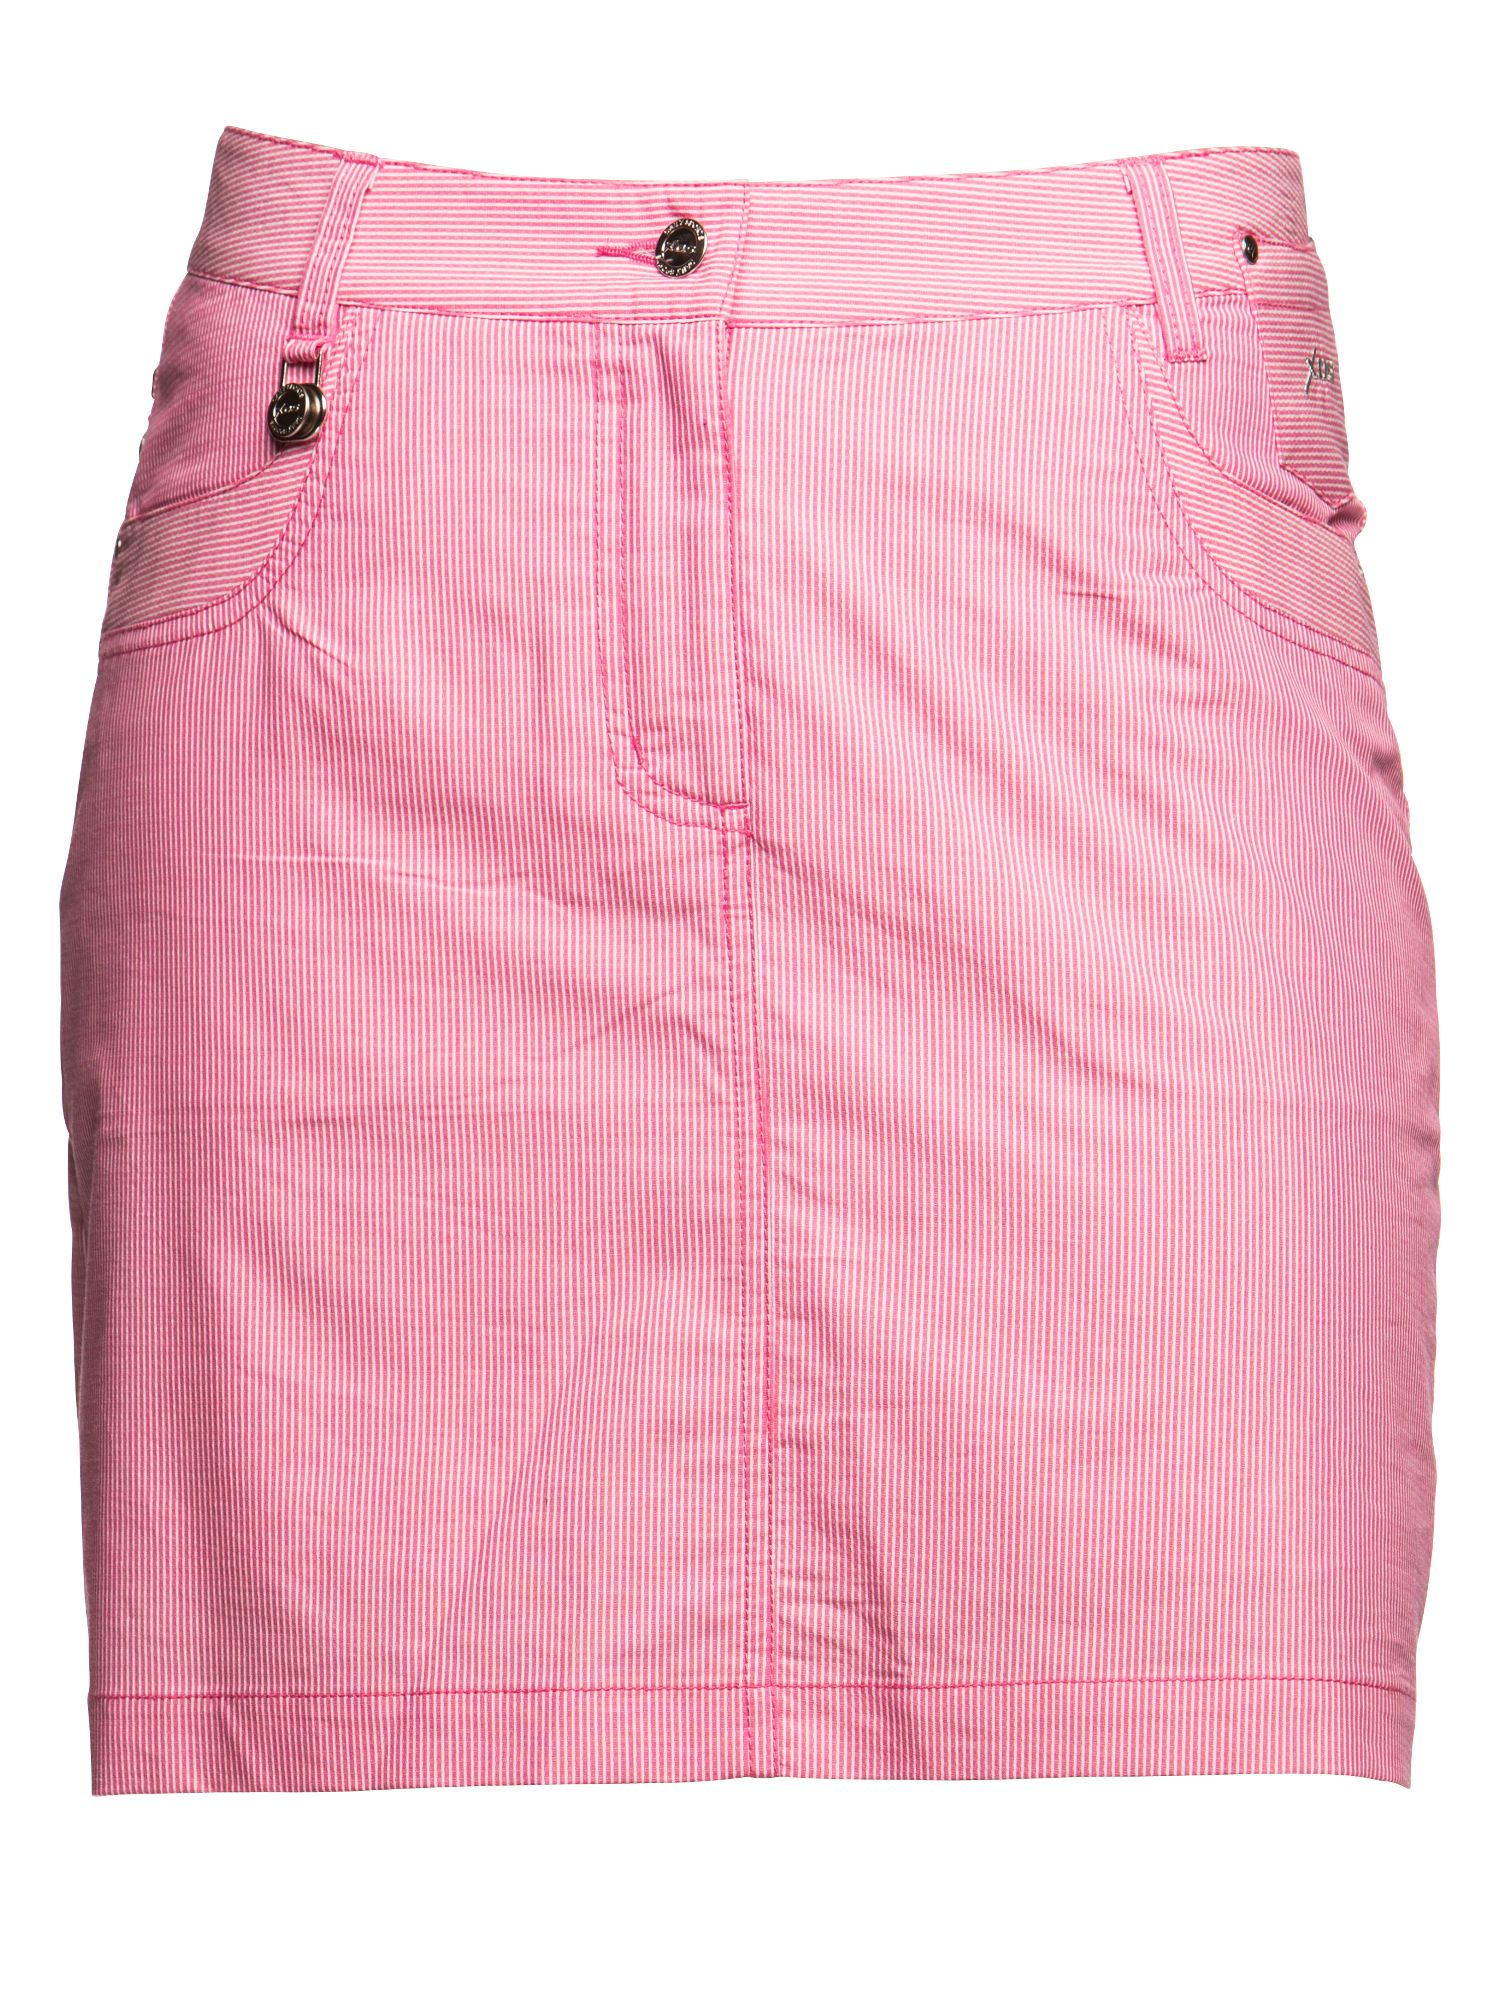 Daily Sports Daily Sports Lia skort, Pink